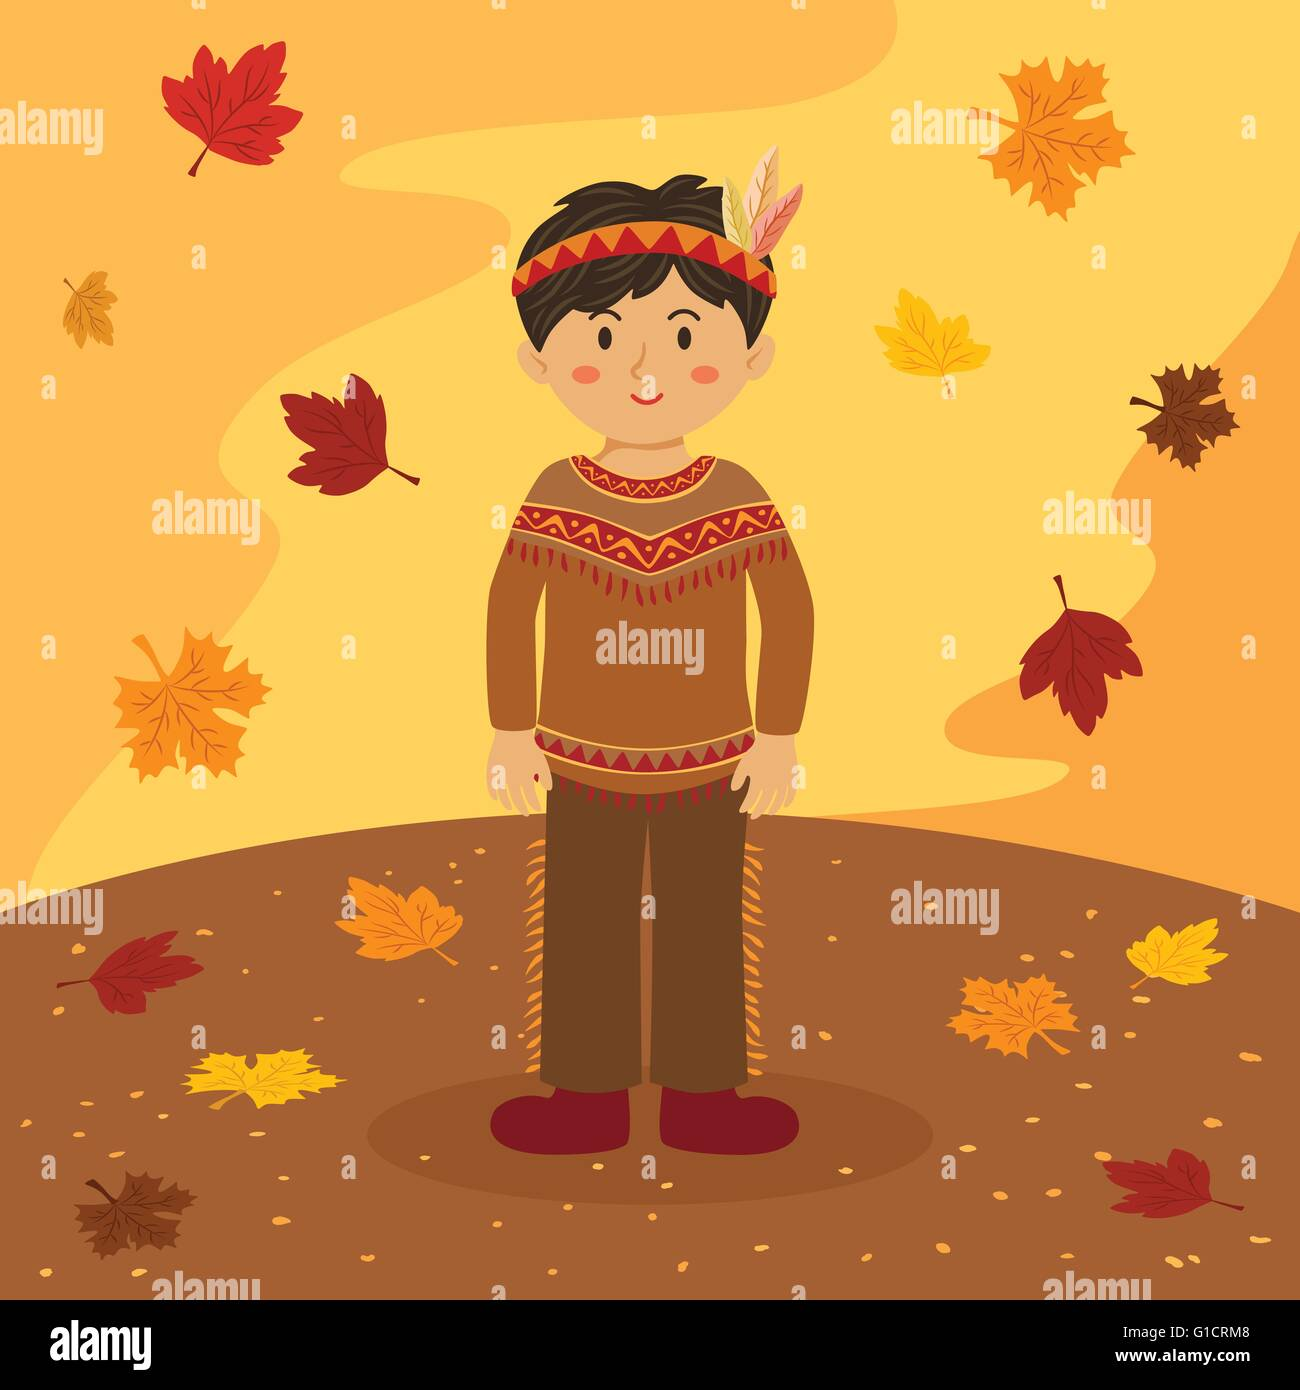 Thanksgiving indian boy illustration of thanksgiving greeting card thanksgiving indian boy illustration of thanksgiving greeting card with a native american boy in autumn background m4hsunfo